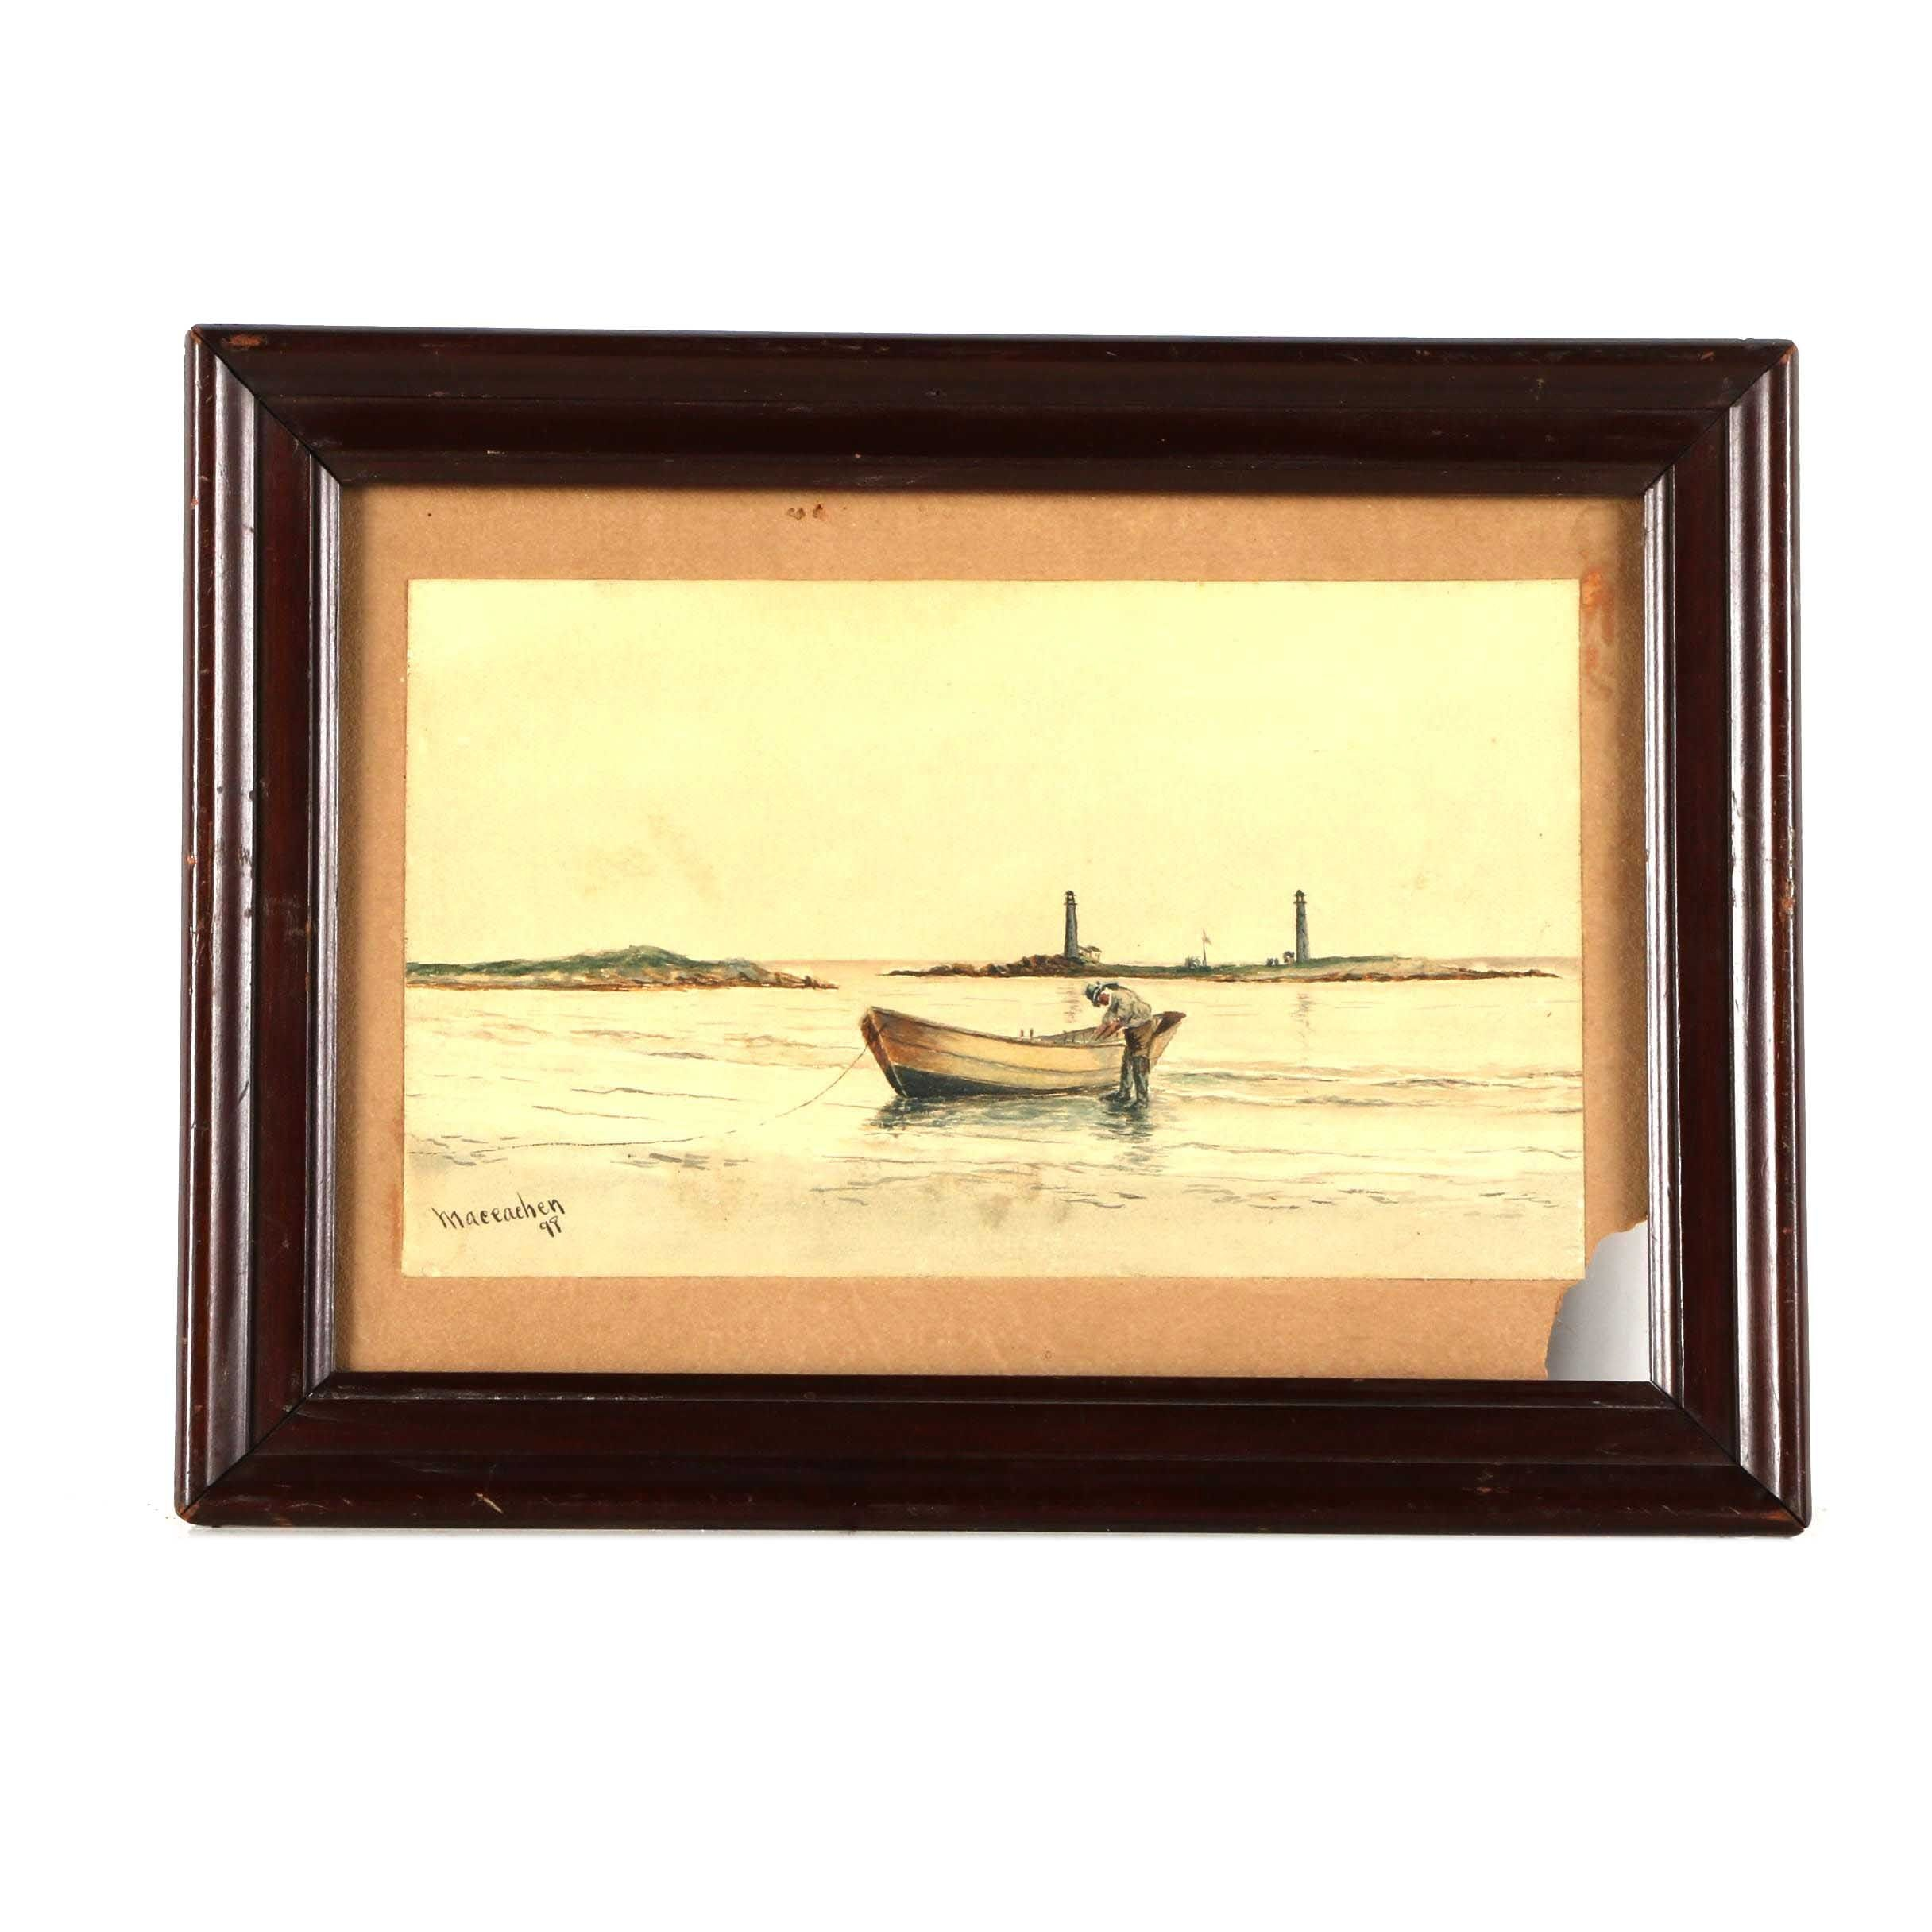 Maceachen Watercolor on Paper River Landscape with Fishing Boat